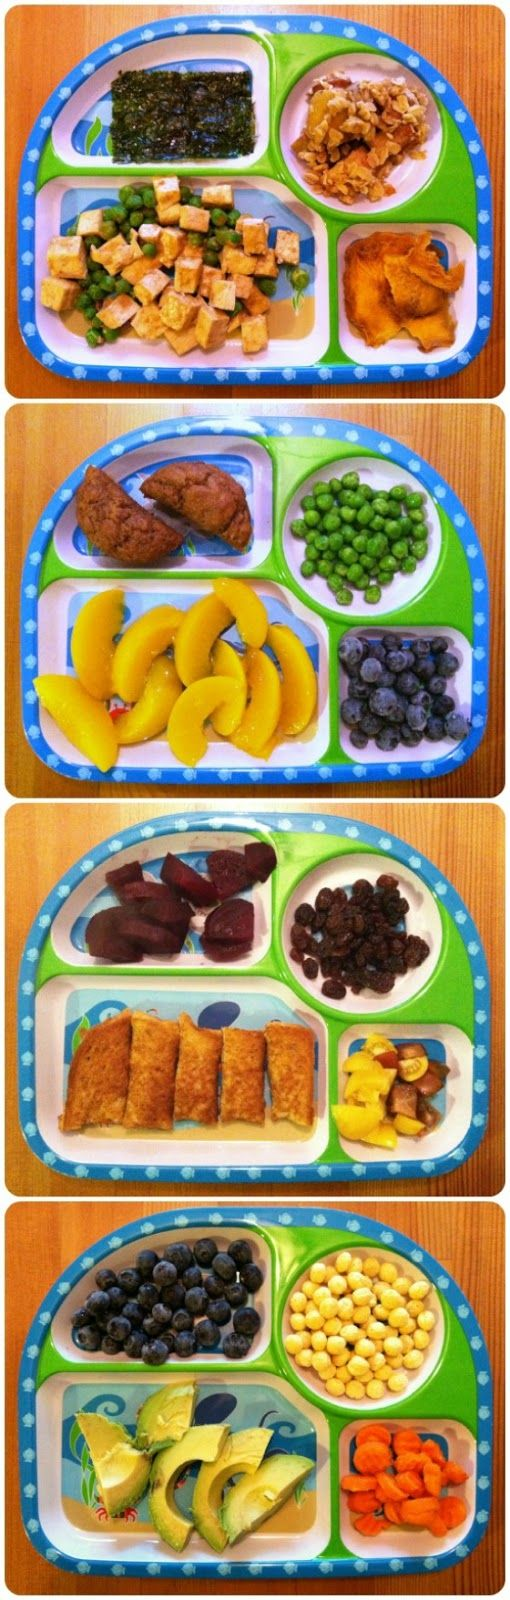 Vegan Mother Hubbard Toddler Meals Not That Were Vegan